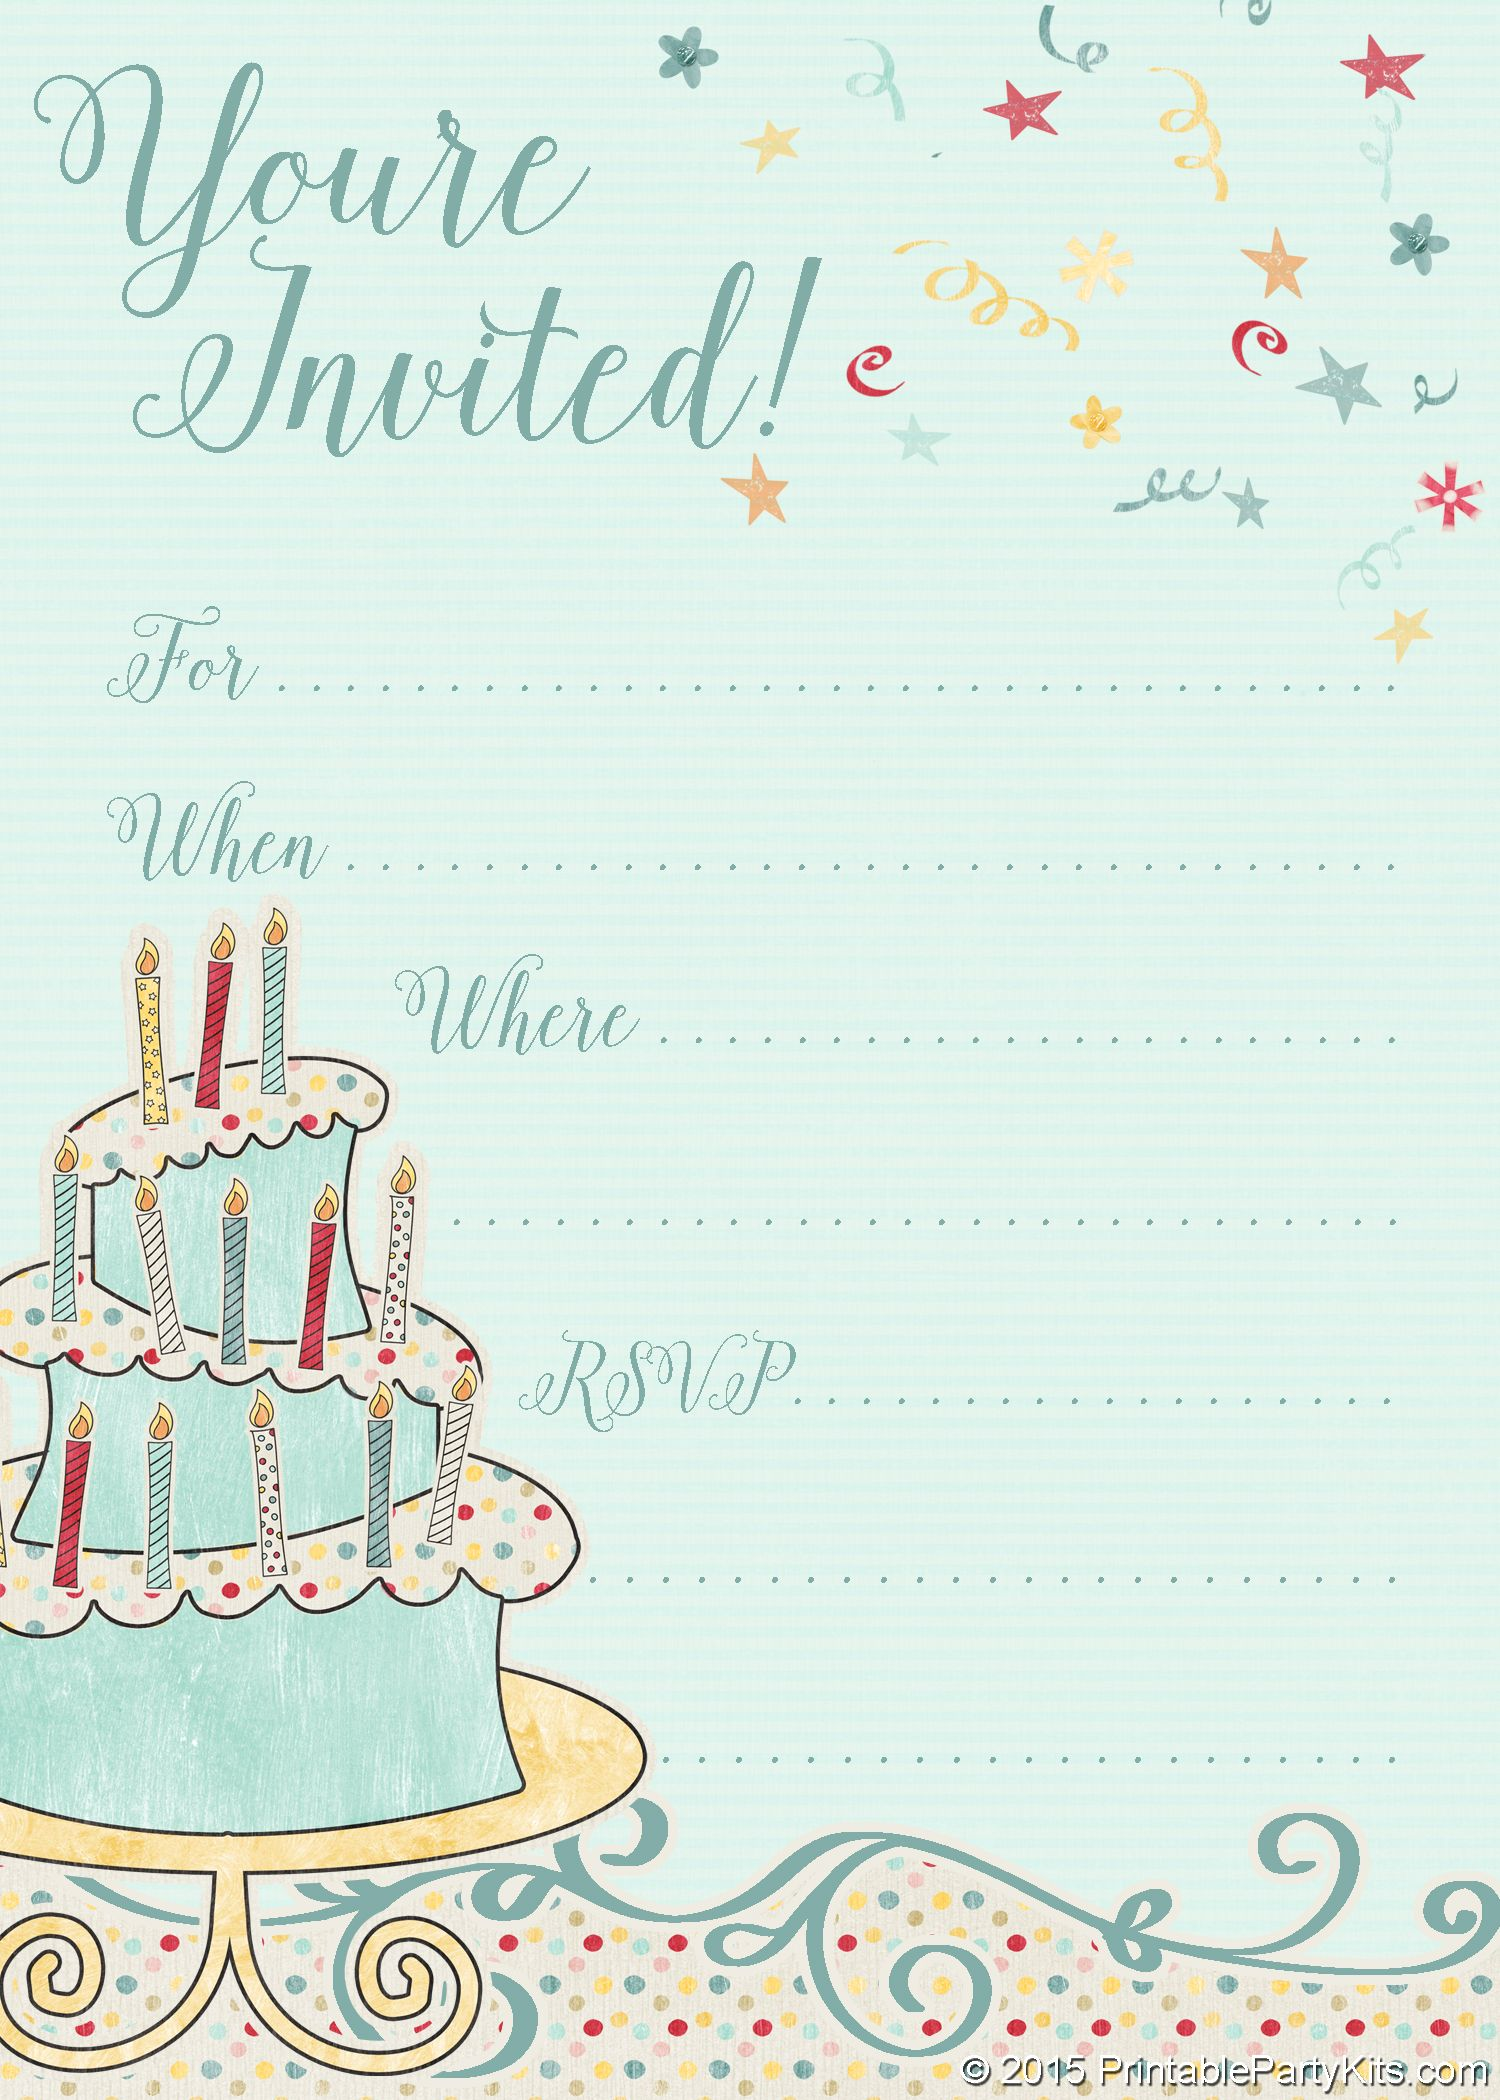 facebook birthday invitation sample